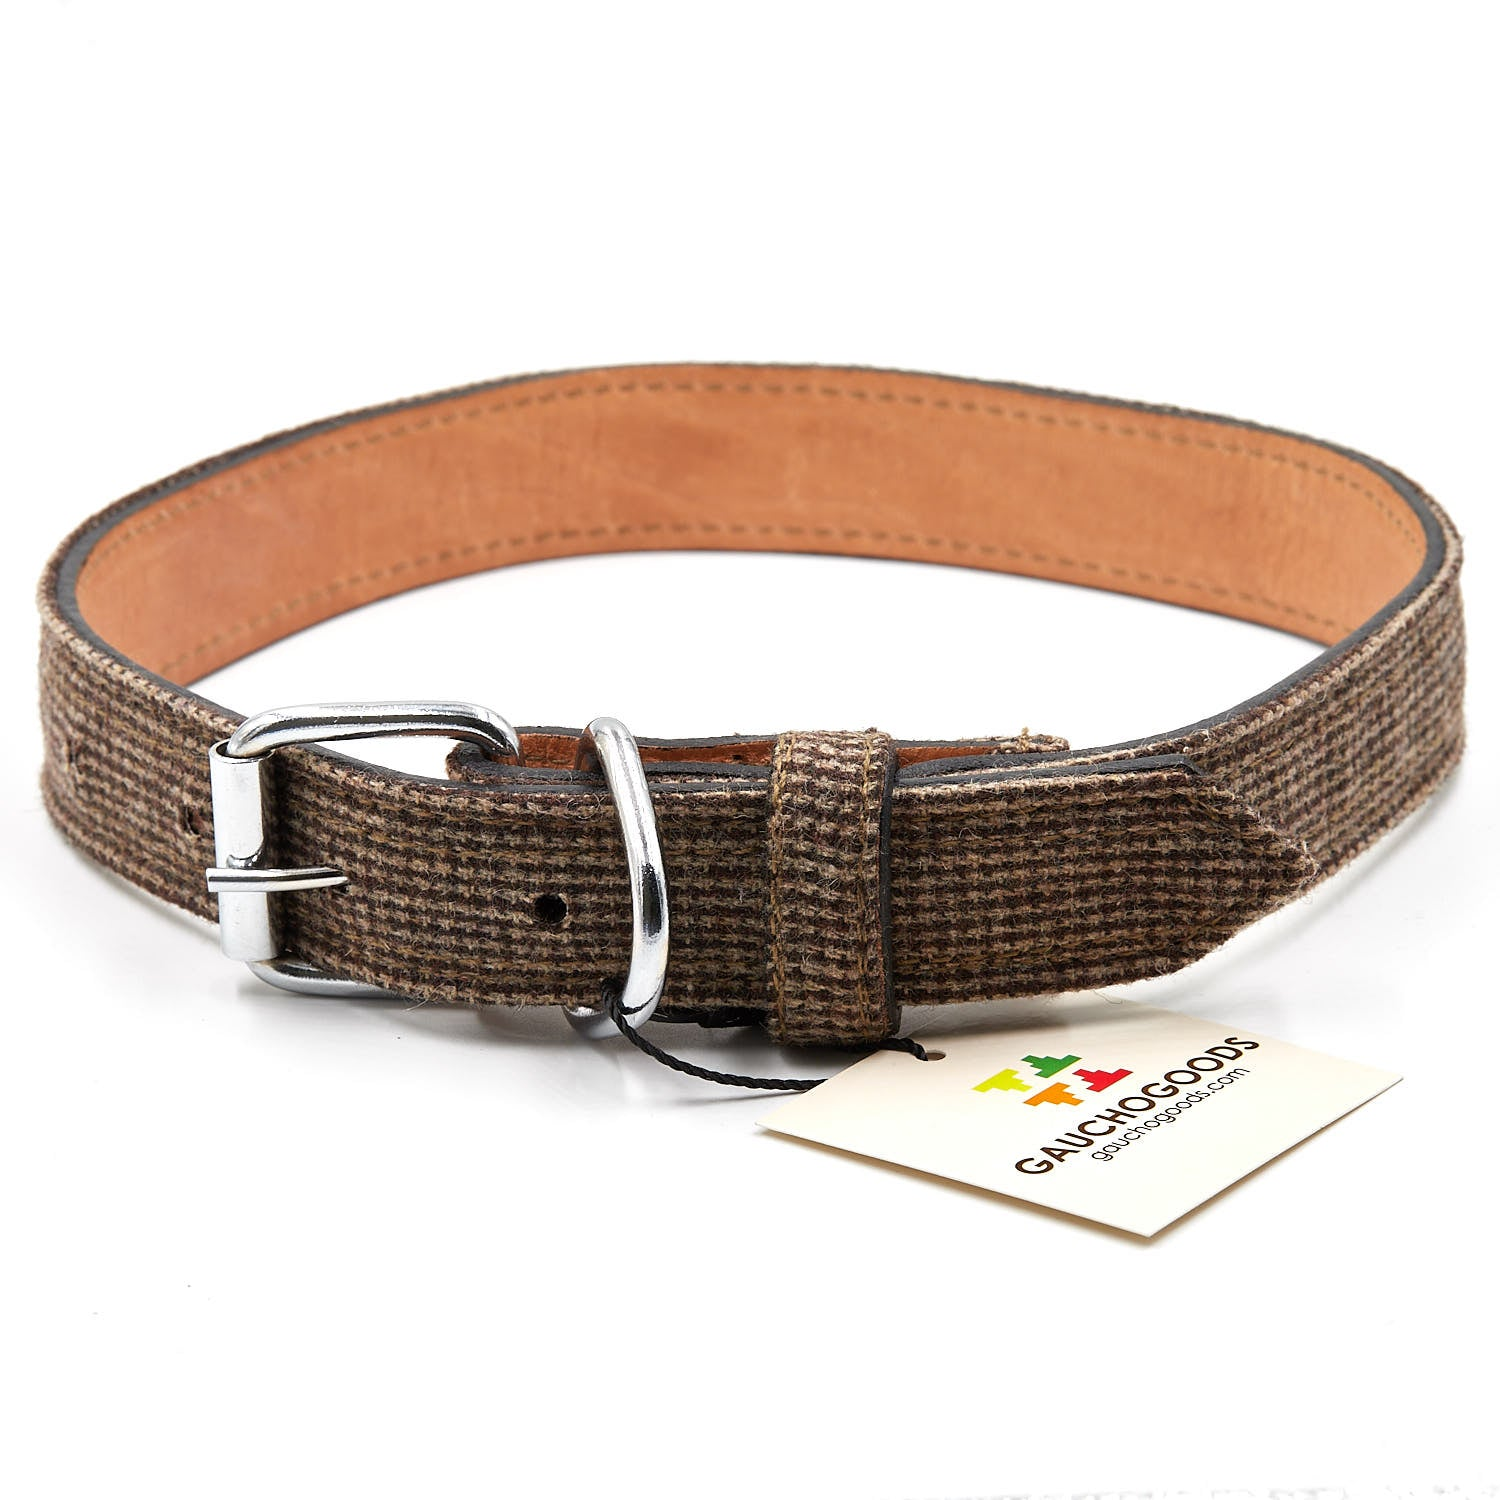 Plaid Leather Dog Collar - stitched with Plaid cotton overlayed